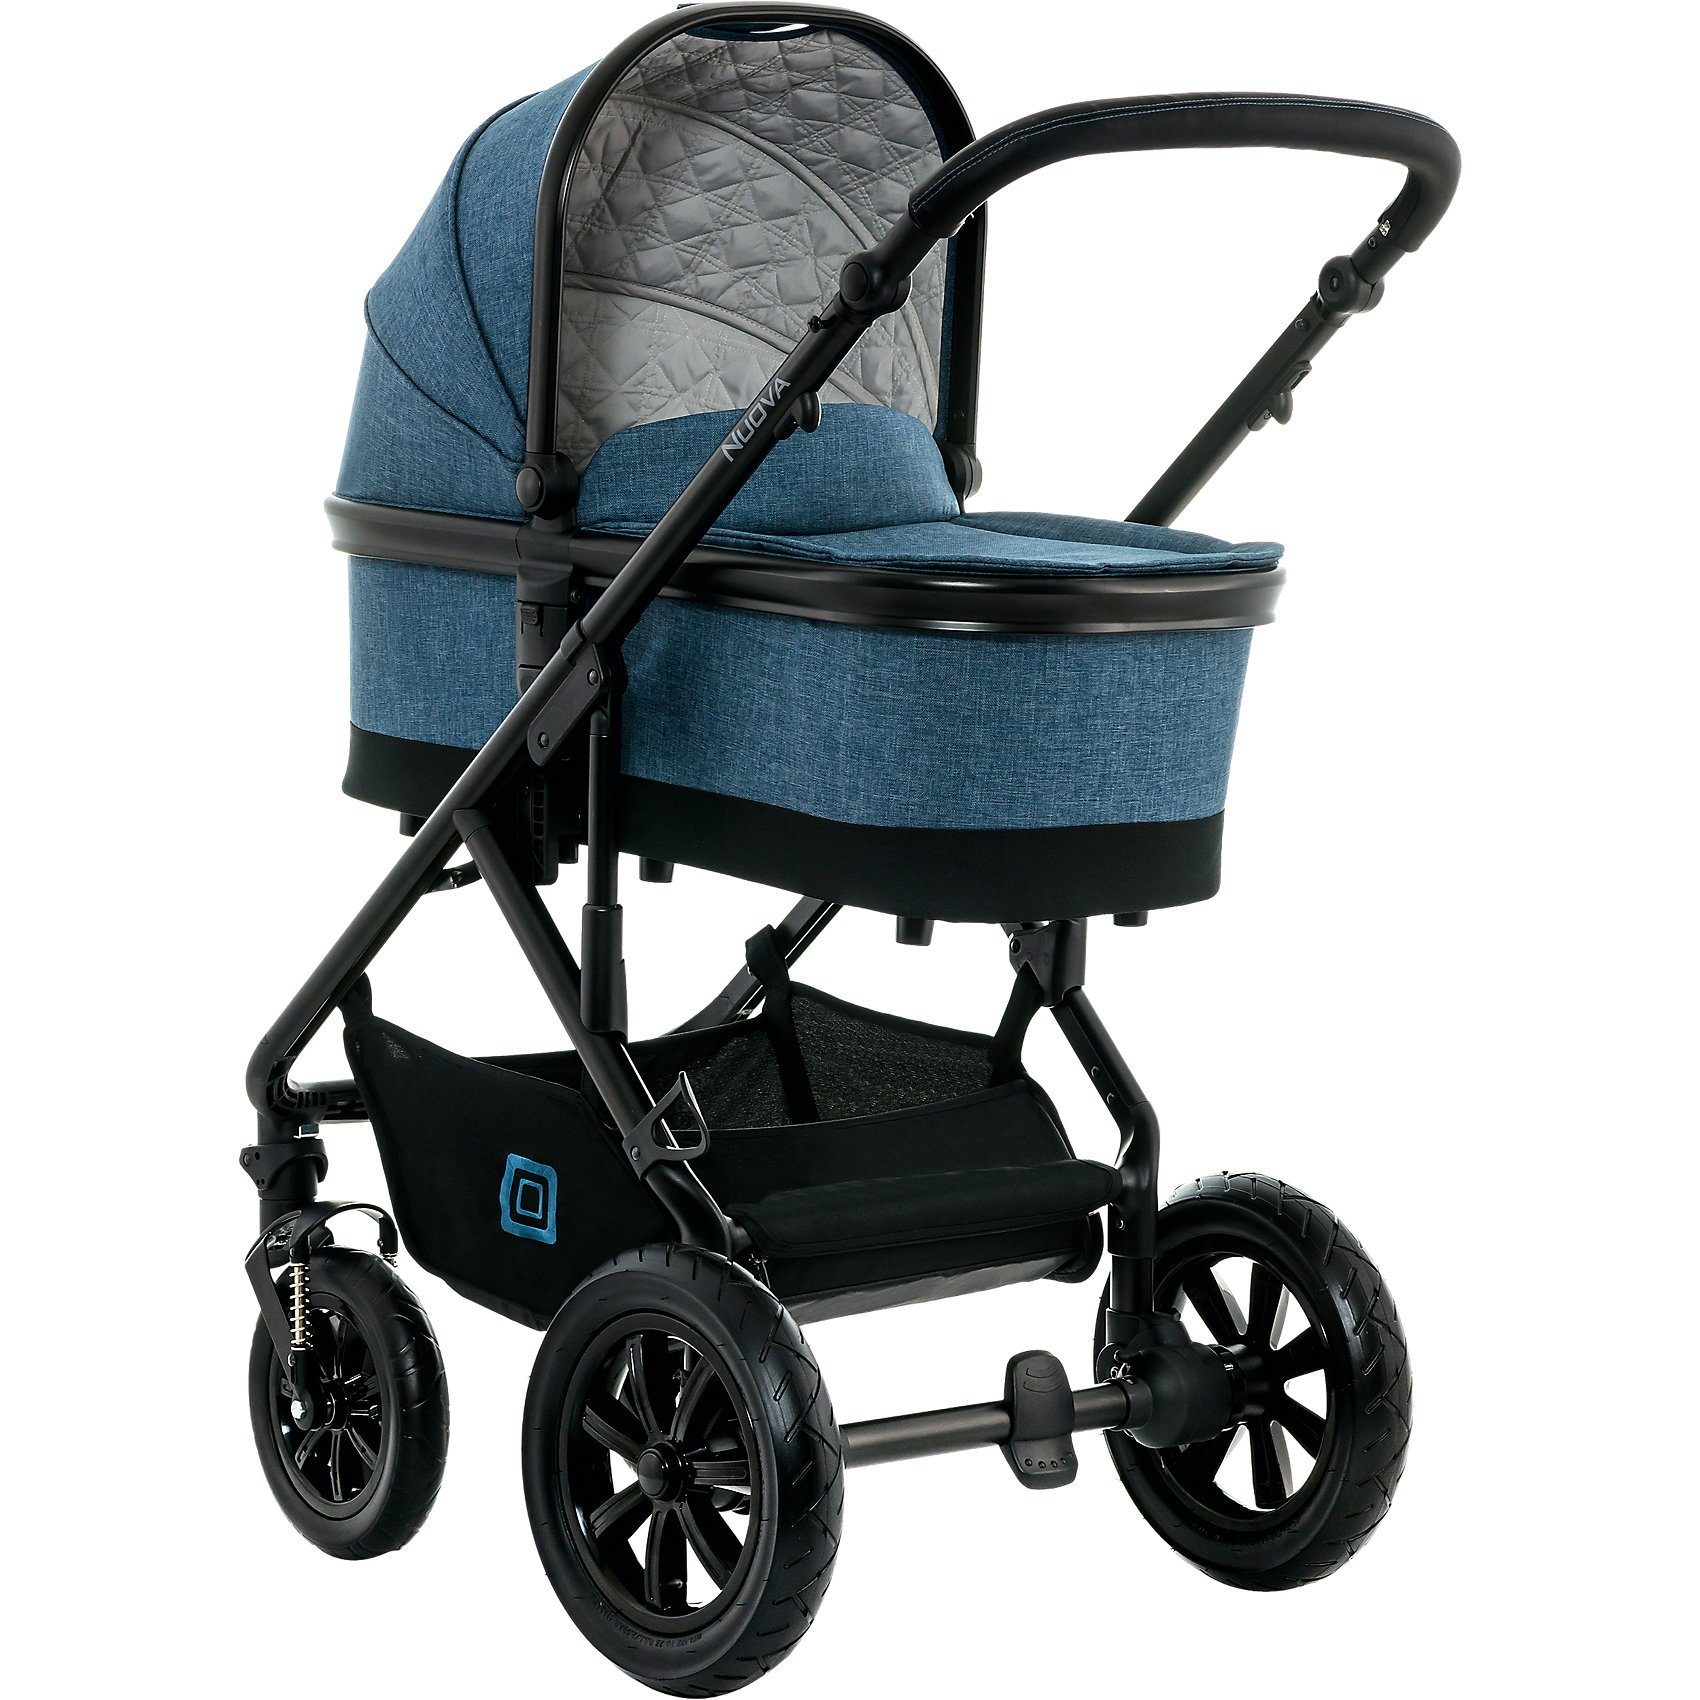 Moon Kombi Kinderwagen NUOVA City, blue/melange